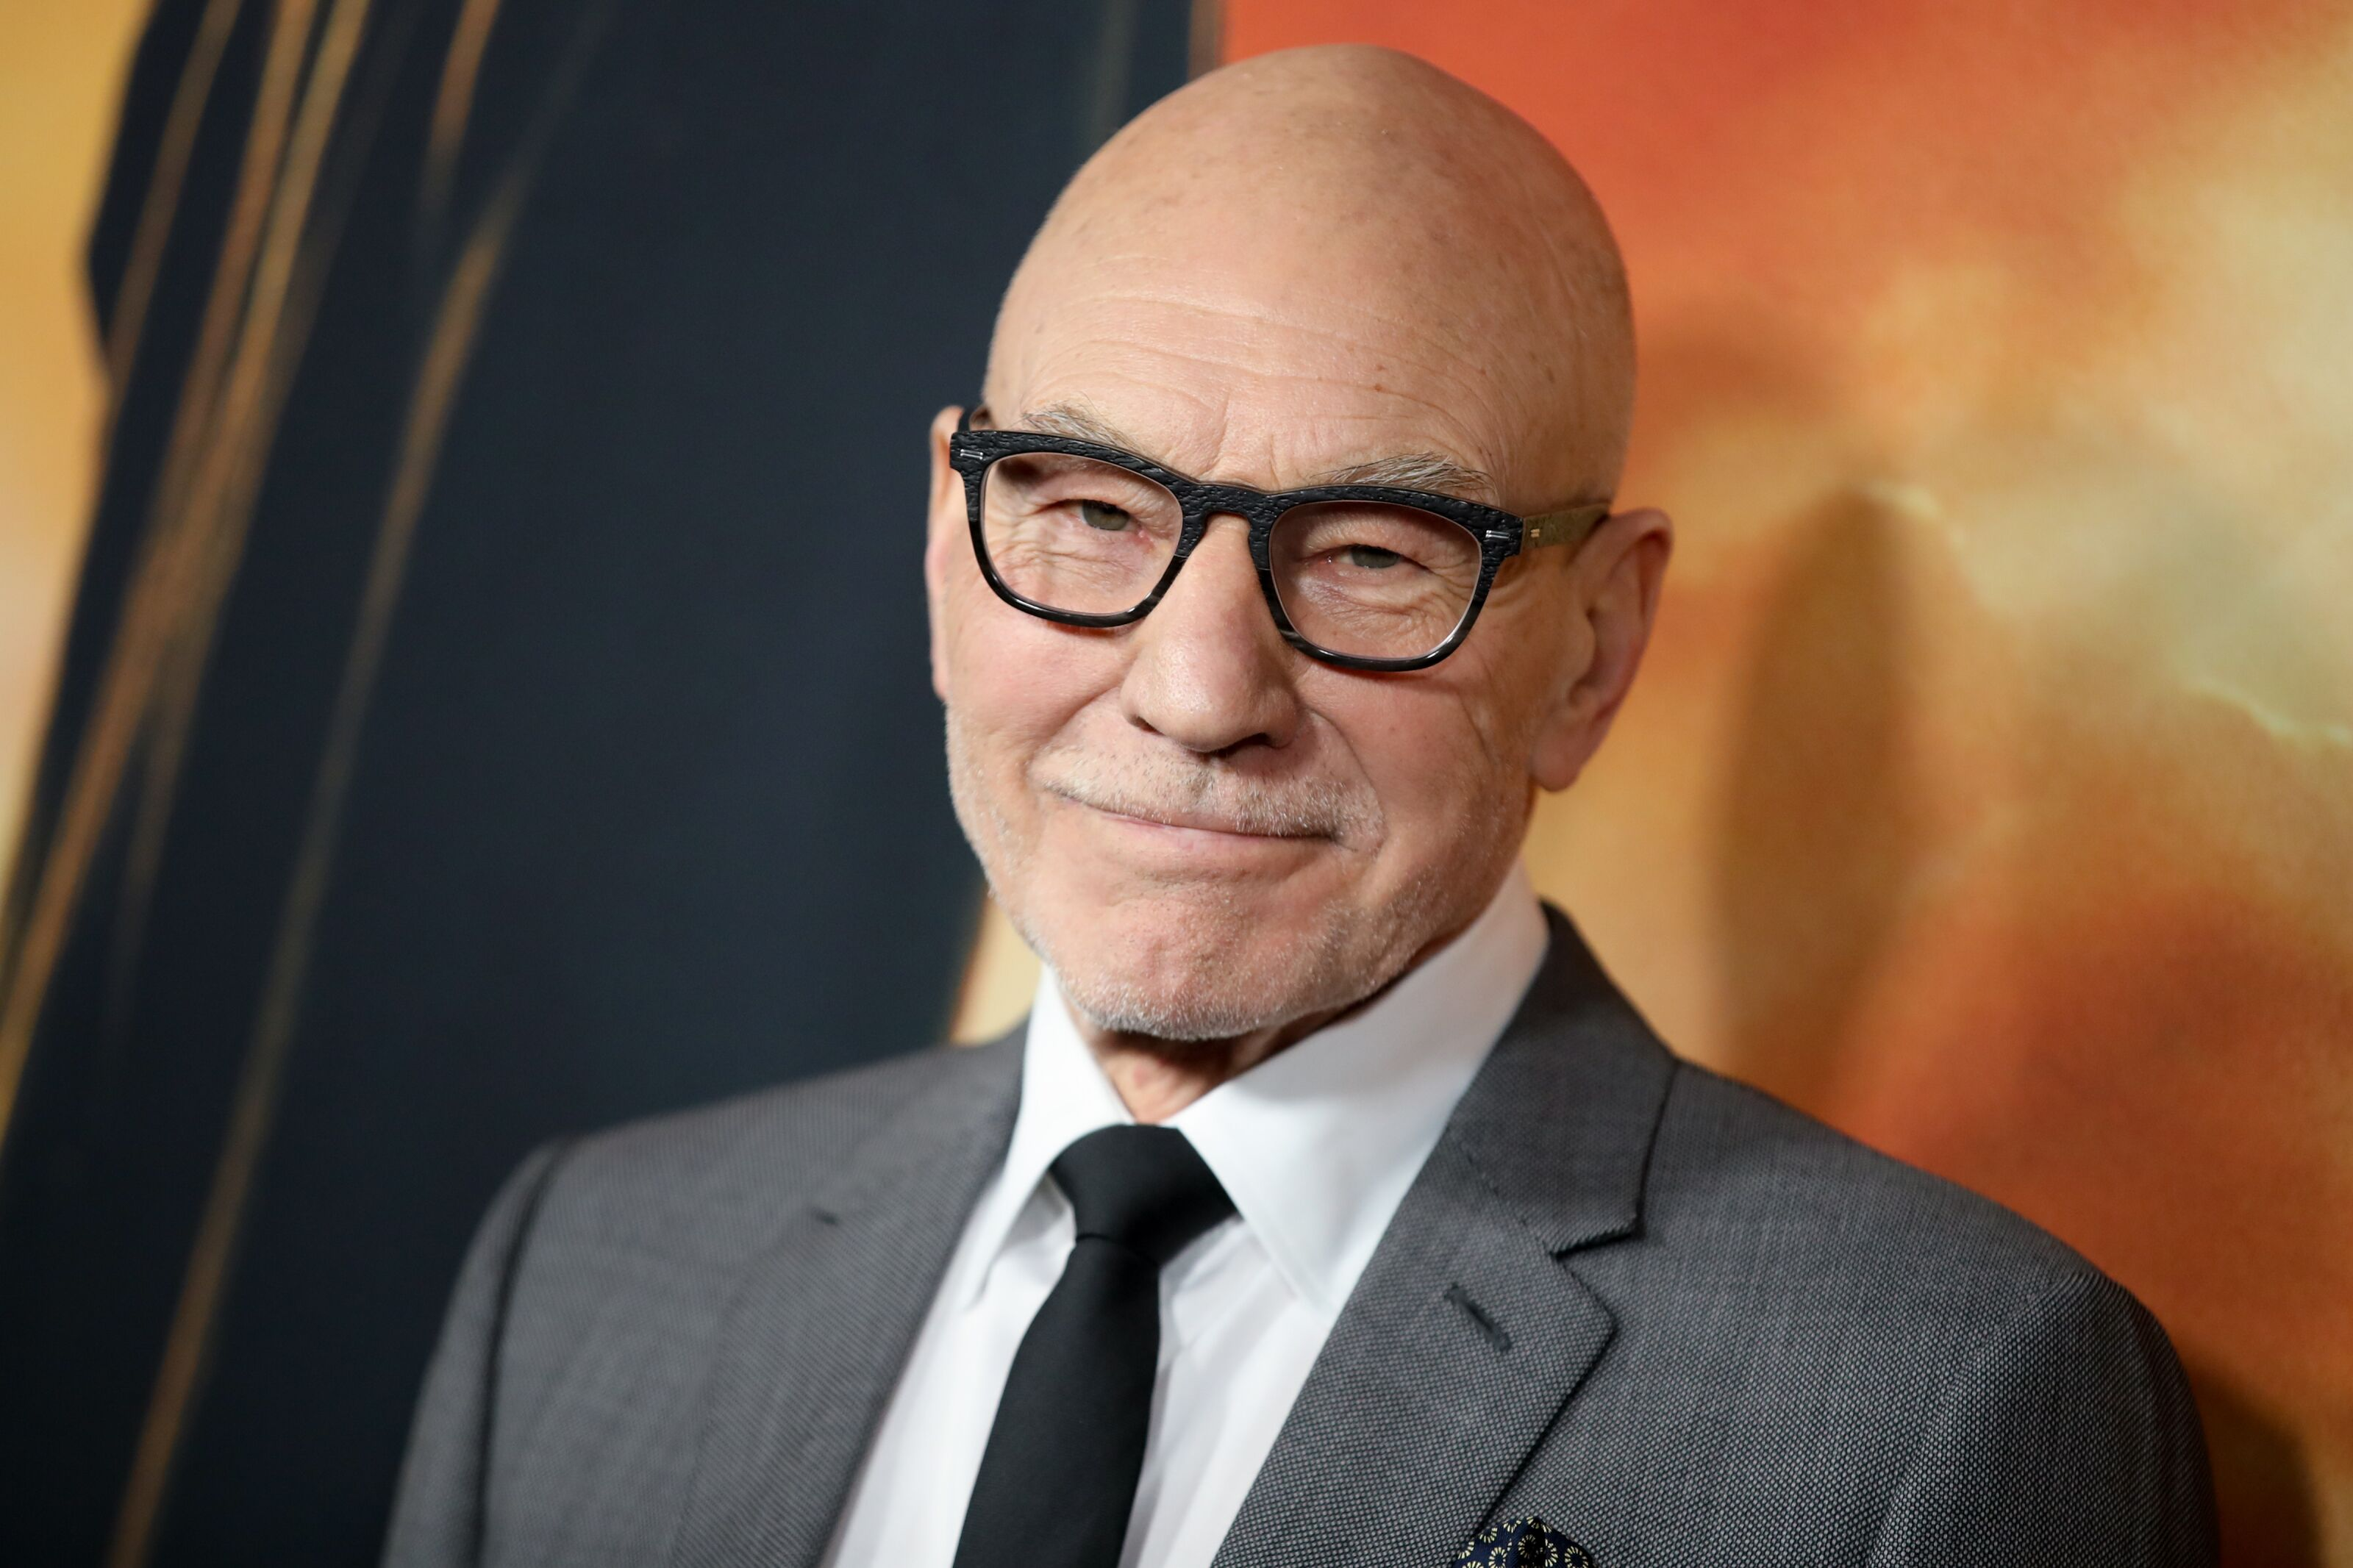 Patrick Stewart has bad news for Charles Xavier and X-Men fans